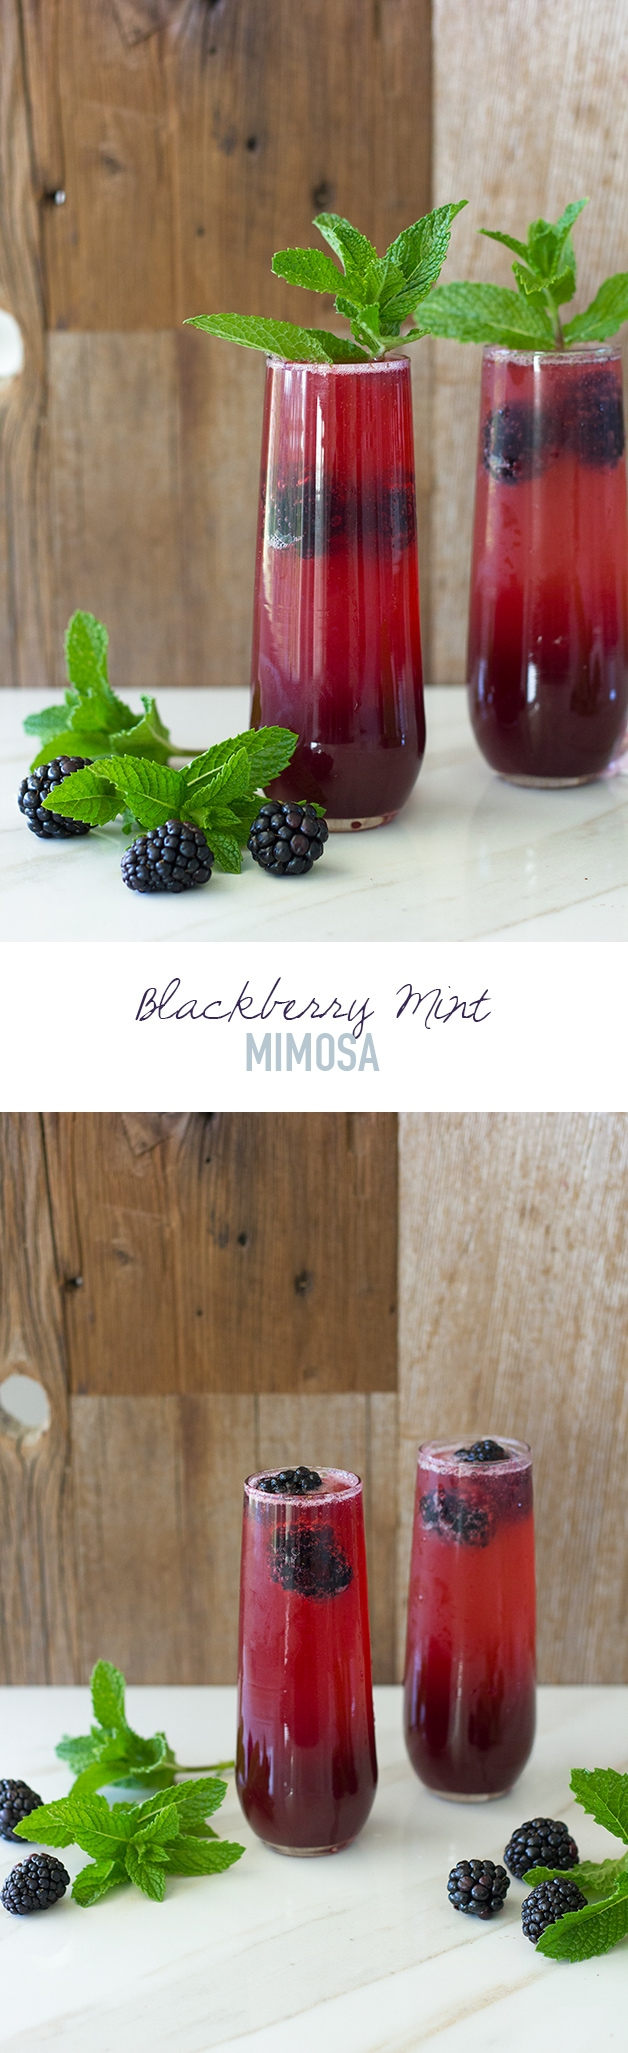 Blackberry Mint Mimosa - a summery spin on the classic mimosa that makes perfect use of the season's fresh produce. | www.brighteyedbaker.com